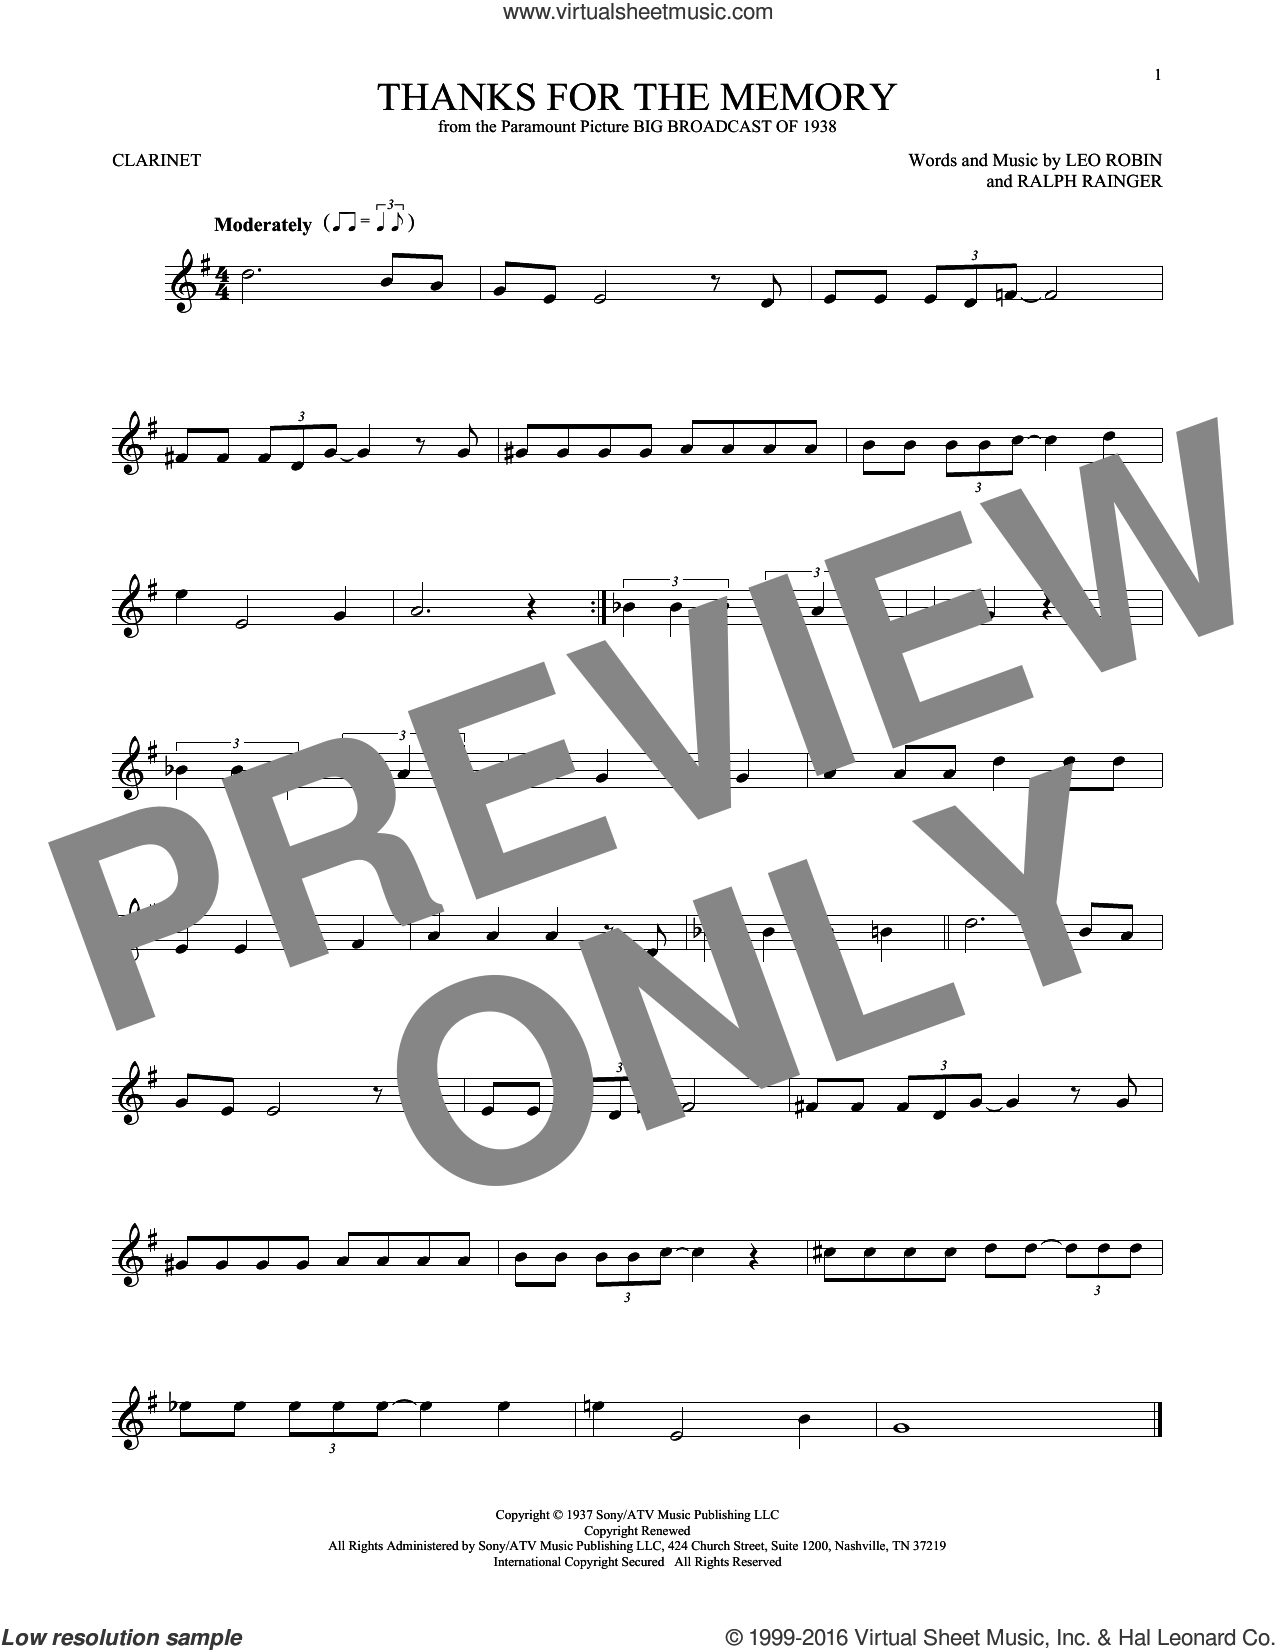 Thanks For The Memory sheet music for clarinet solo by Leo Robin, Dave McKenna, Mildred Bailey, Shep Fields and Ralph Rainger, intermediate skill level